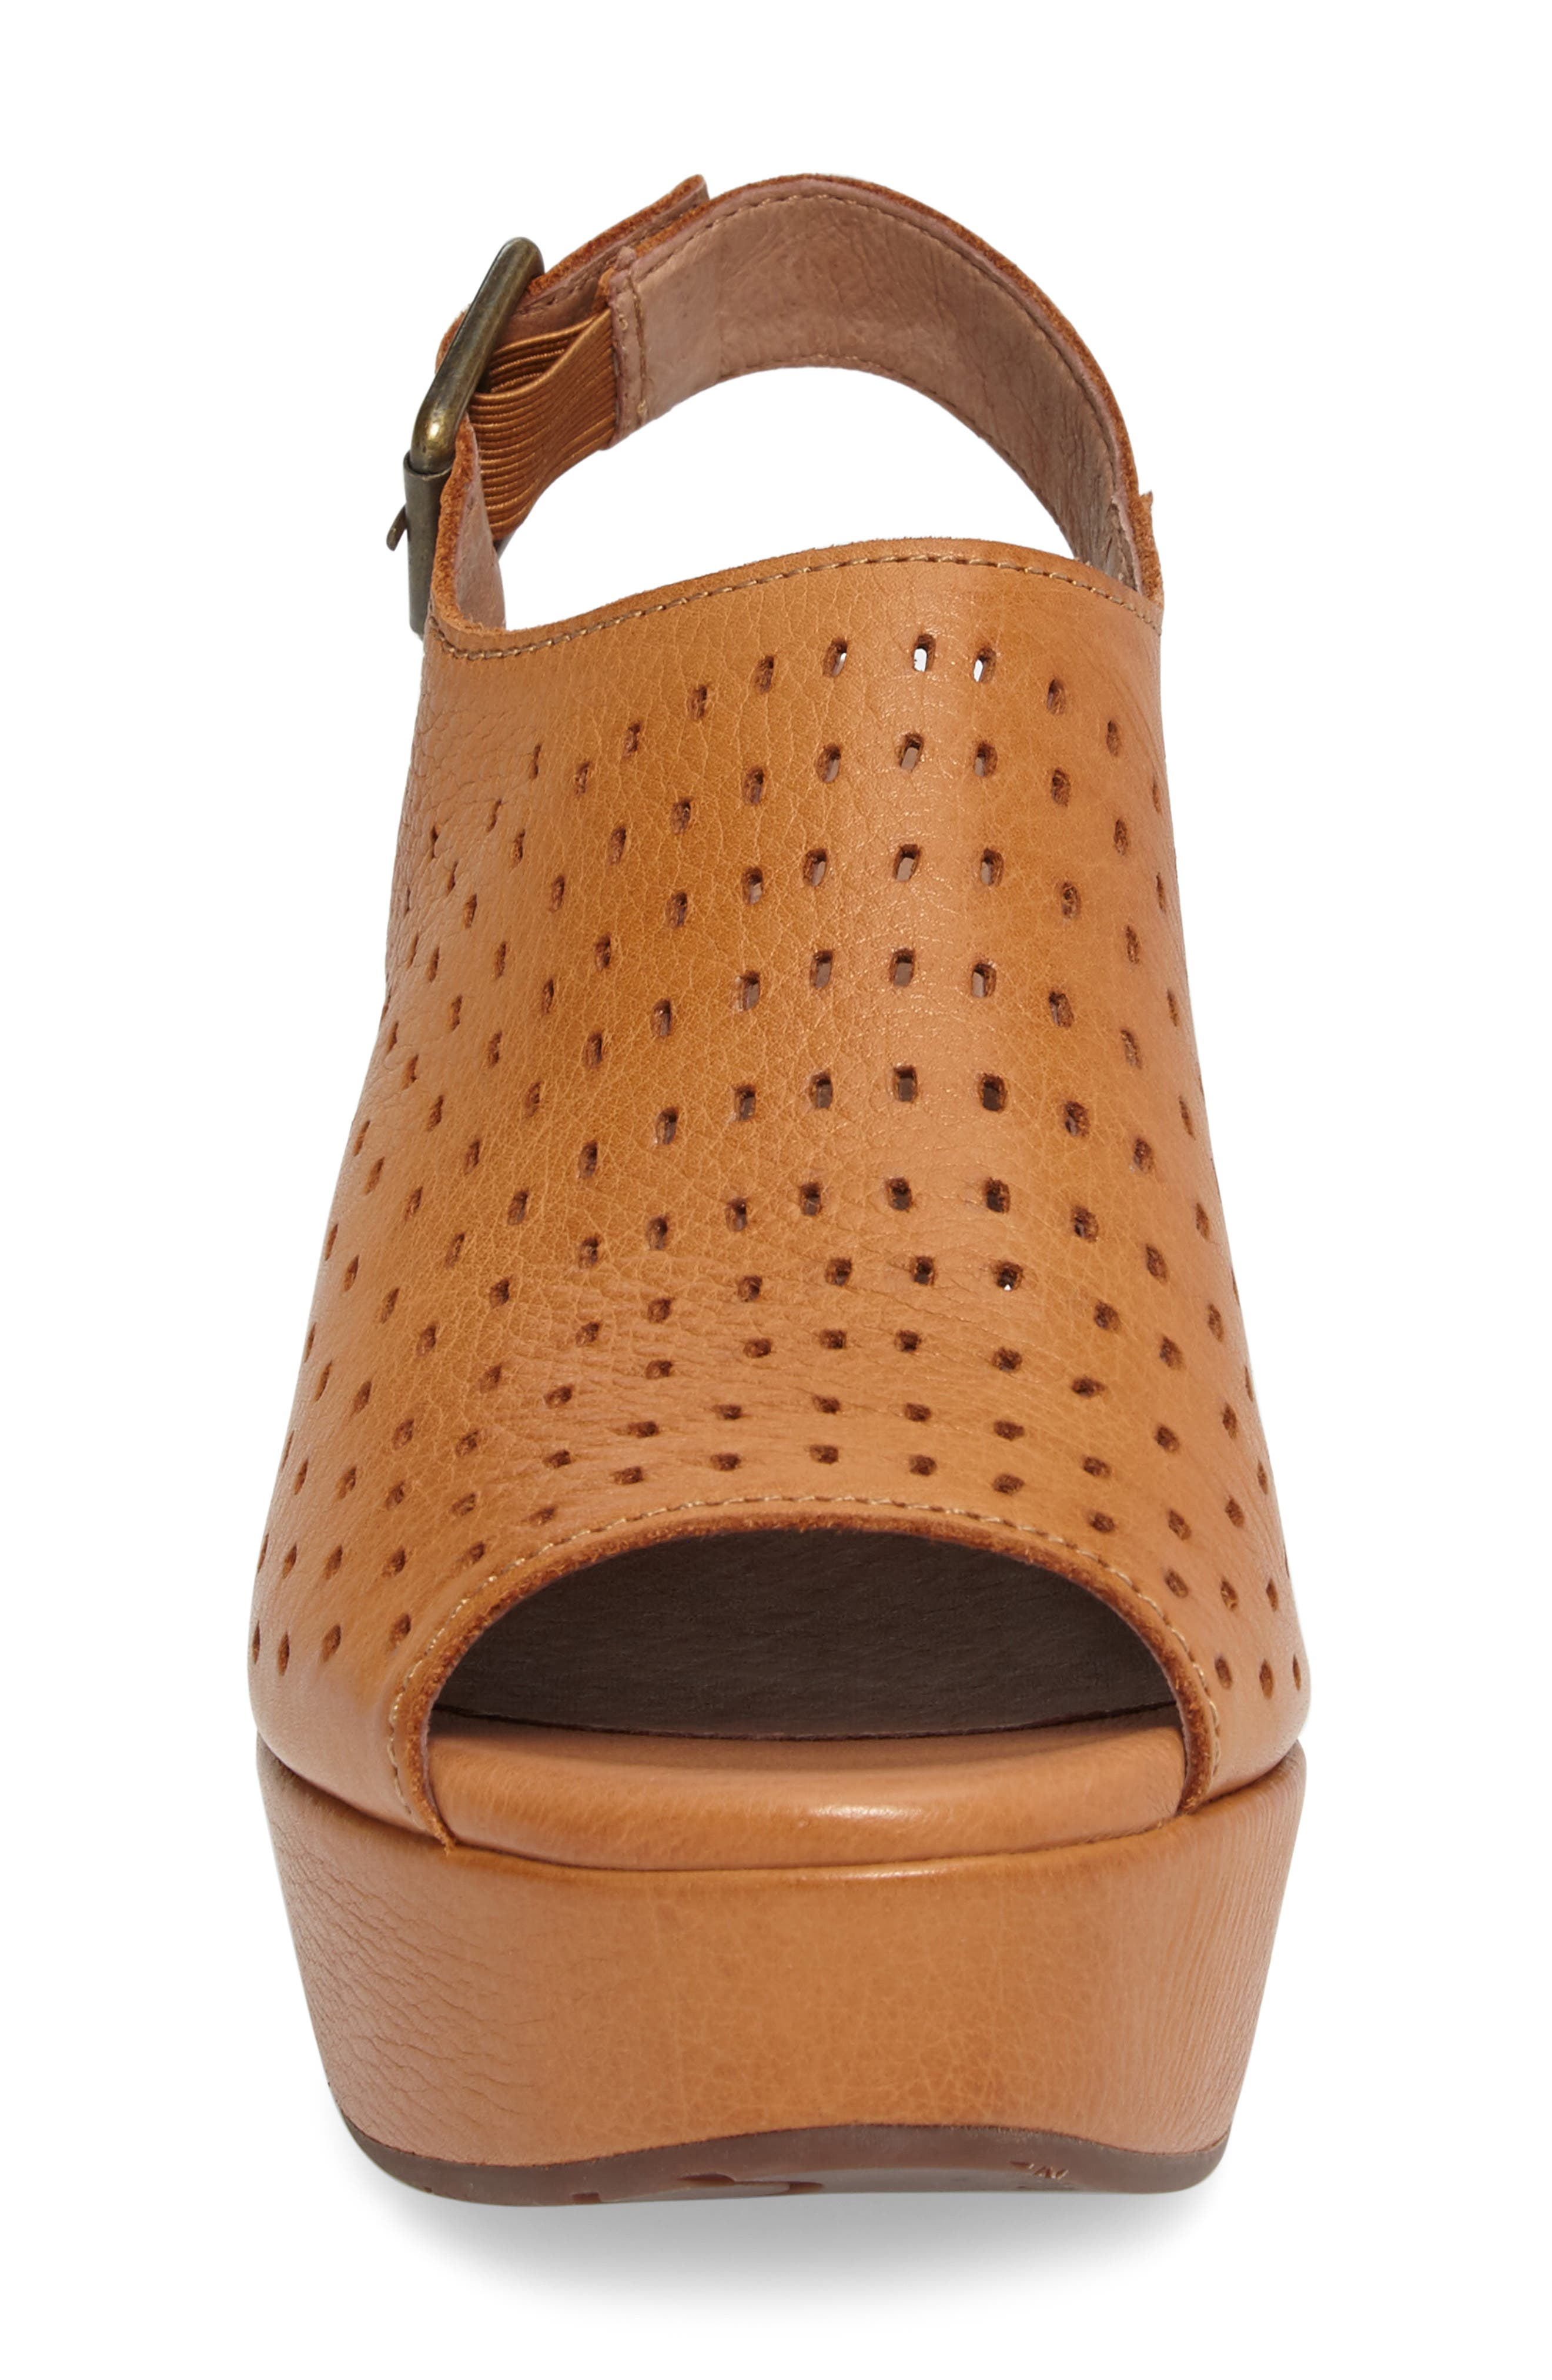 Wala Perforated Wedge Sandal,                             Alternate thumbnail 4, color,                             200